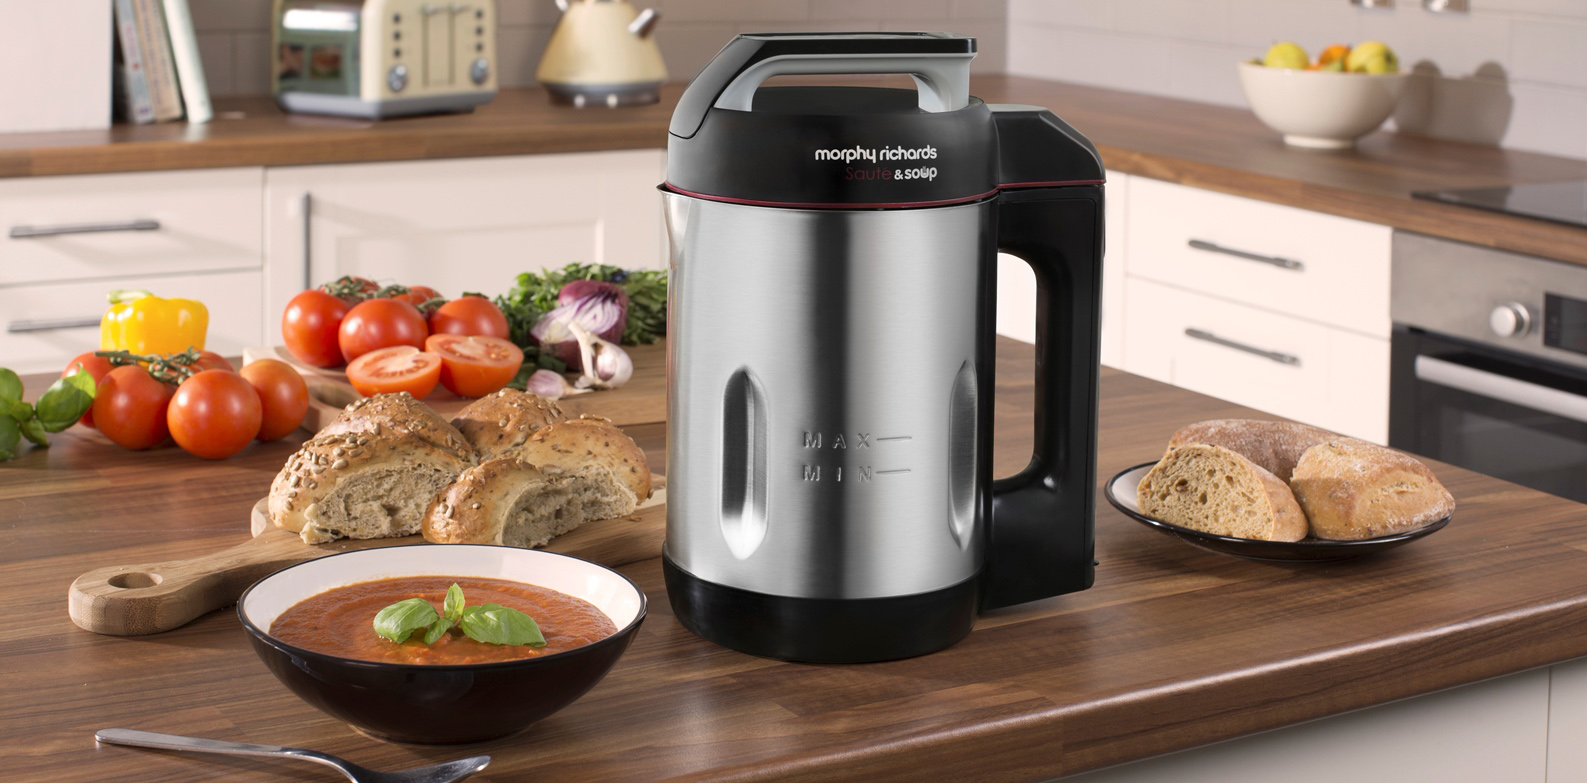 Morphy richards чайник Химки